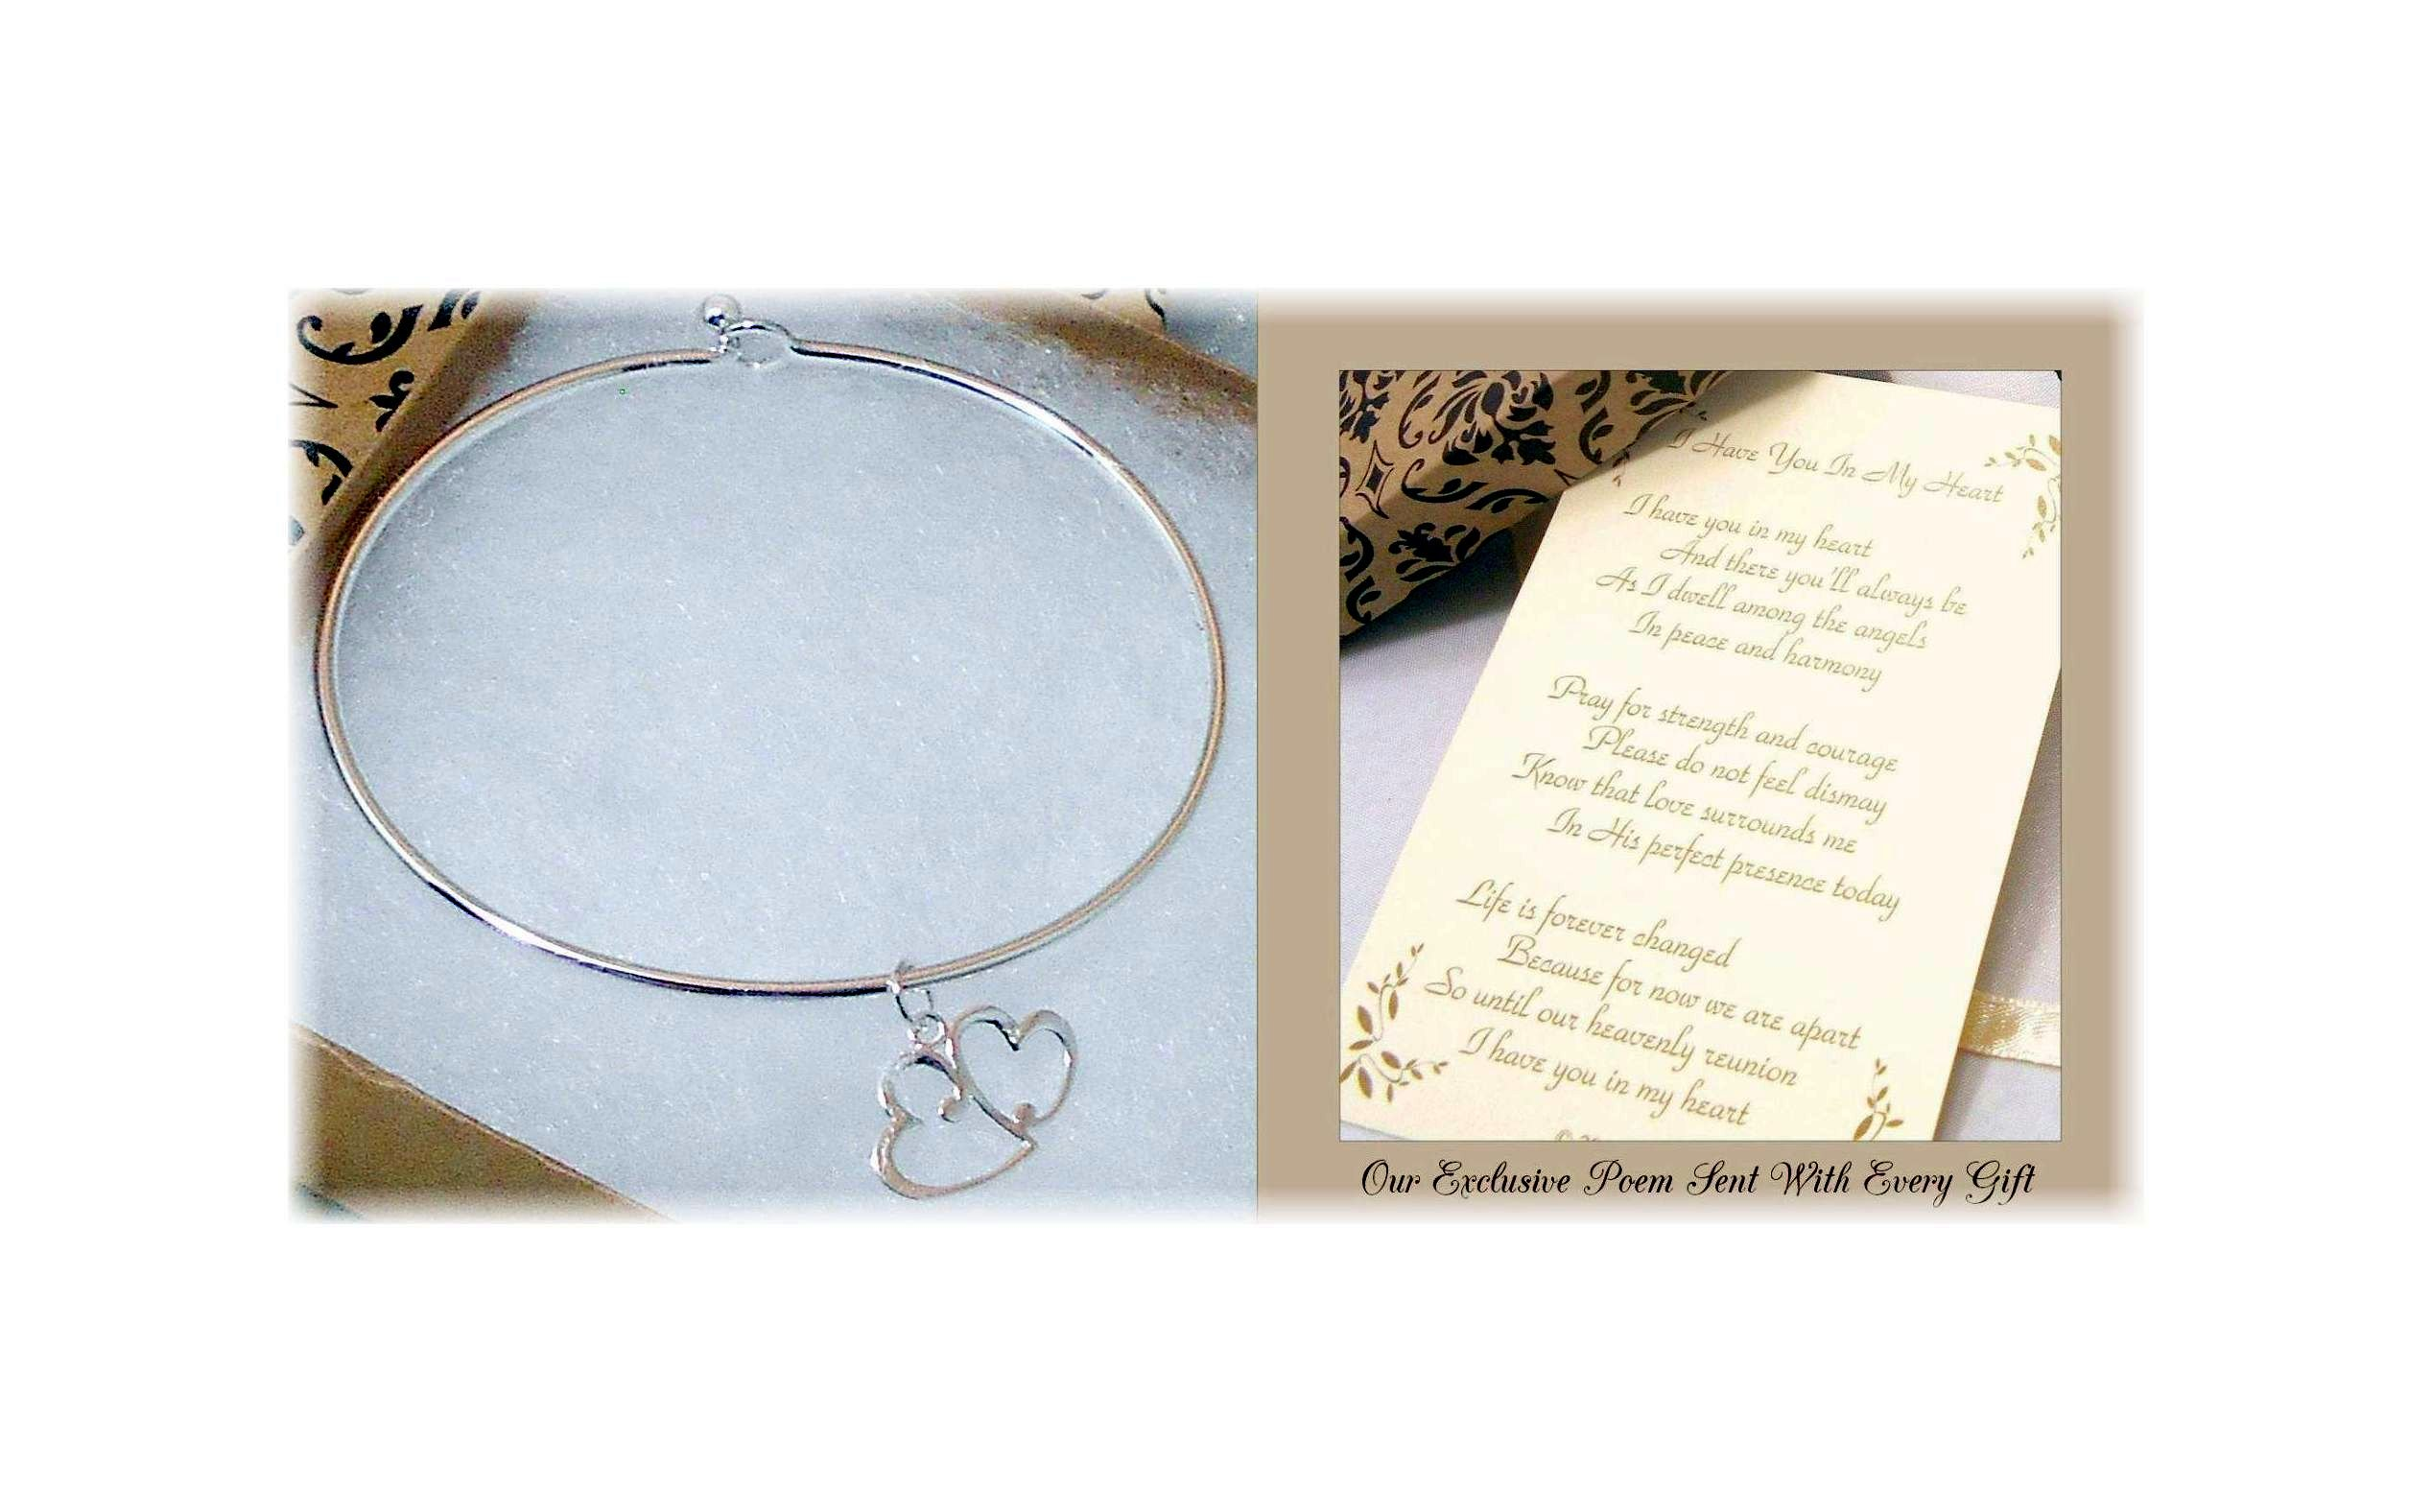 Dulaya Memories Sympathy Gift-Send to Memorial-Funeral or Home of Grieving -Bonded Hearts Bracelet